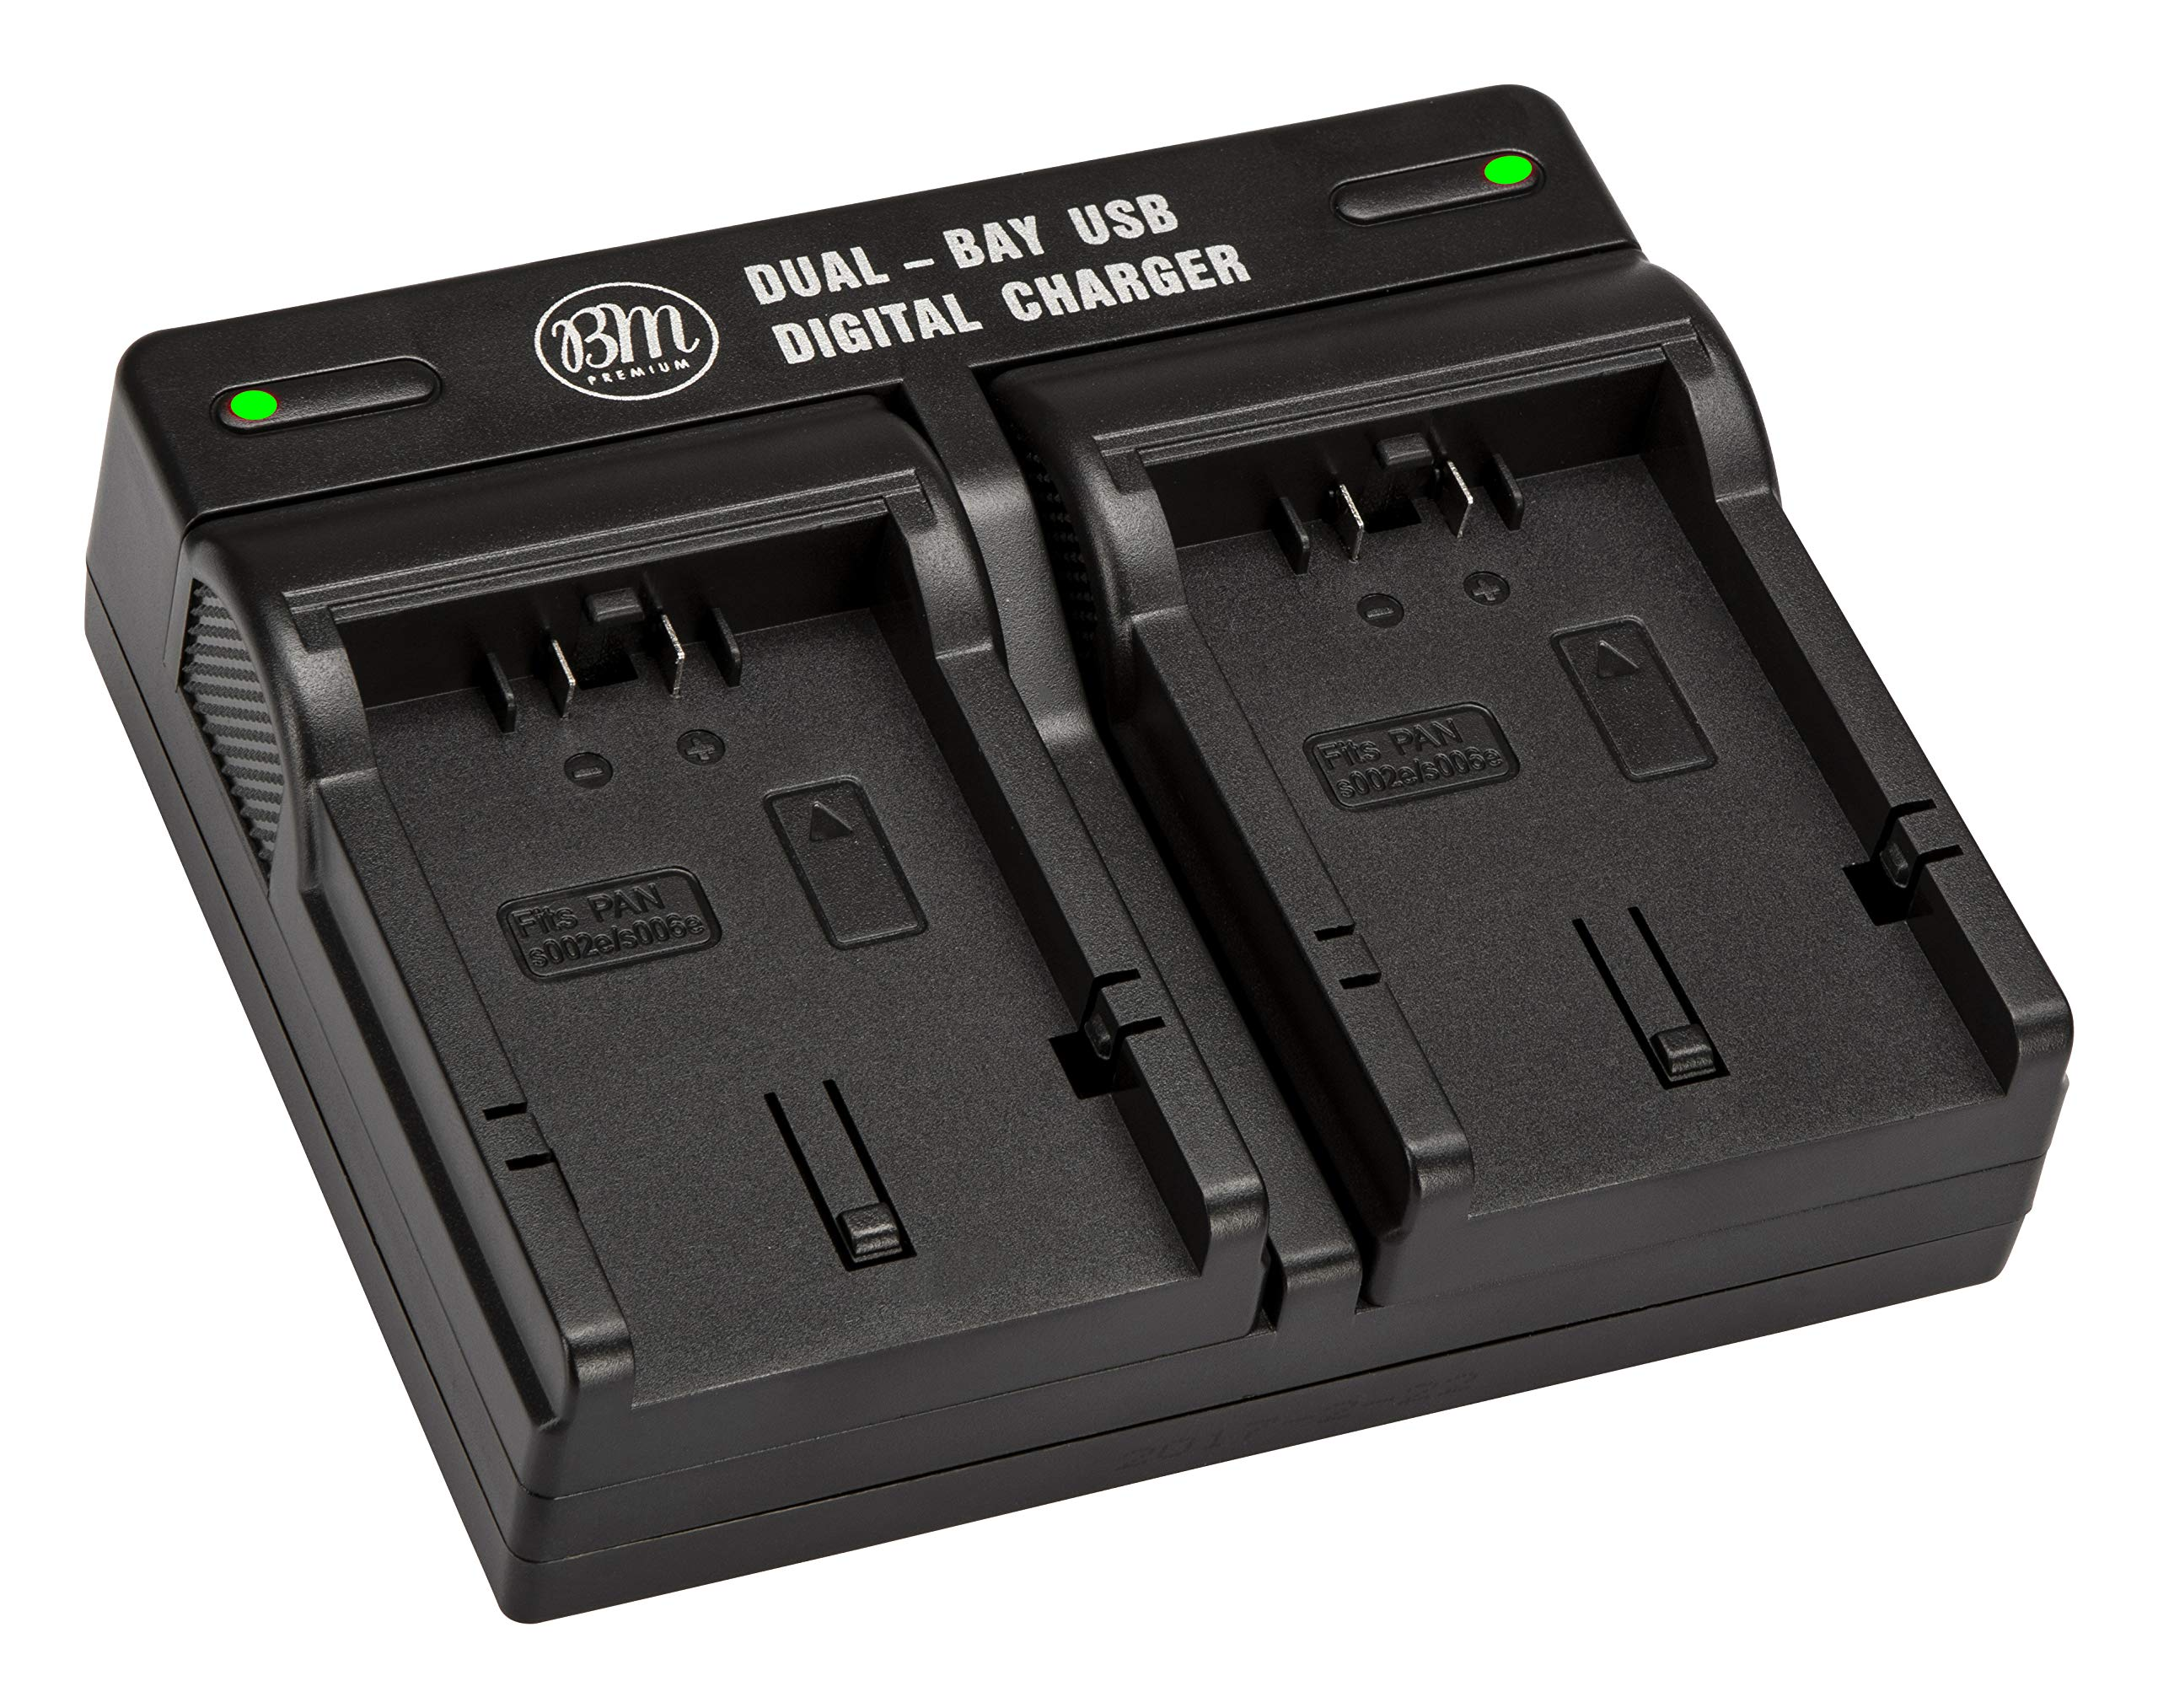 BM Premium CGA-S006 Dual Battery Charger for Panasonic Lumix DMC-FZ7, DMC-FZ8, DMC-FZ18, DMC-FZ28, DMC-FZ30, DMC-FZ35, DMC-FZ38, DMC-FZ50 Digital Camera